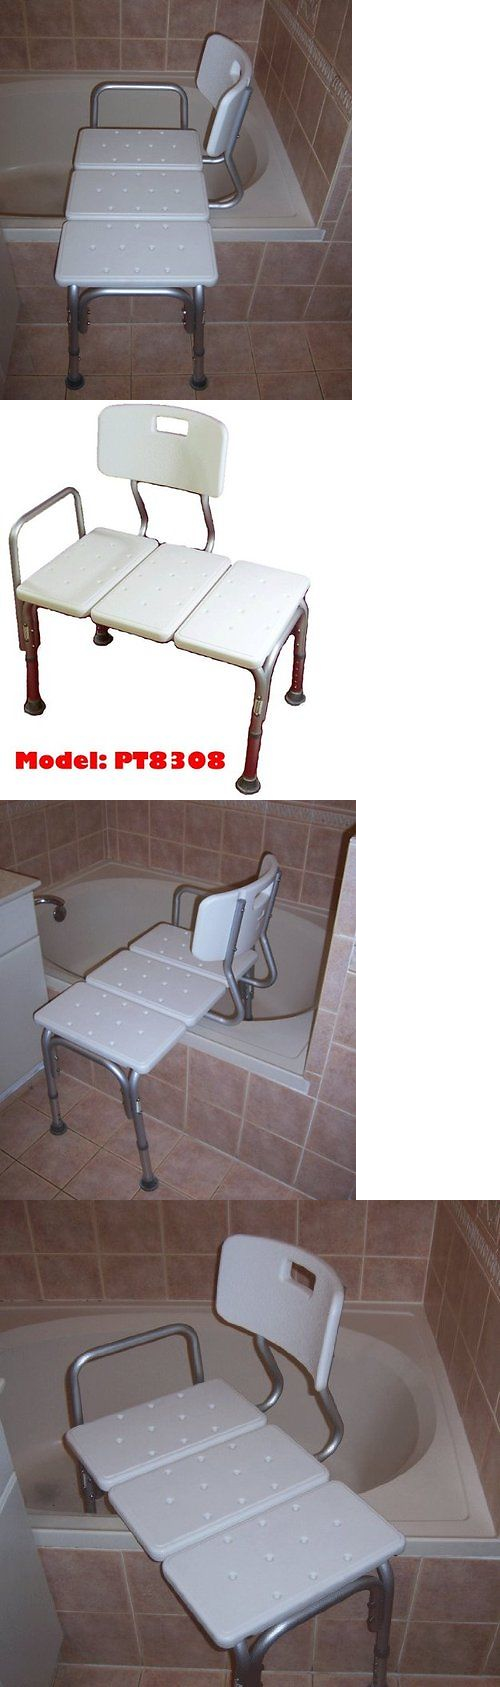 Transfer Boards and Benches: Shower Chairs For Elderly Medical ...